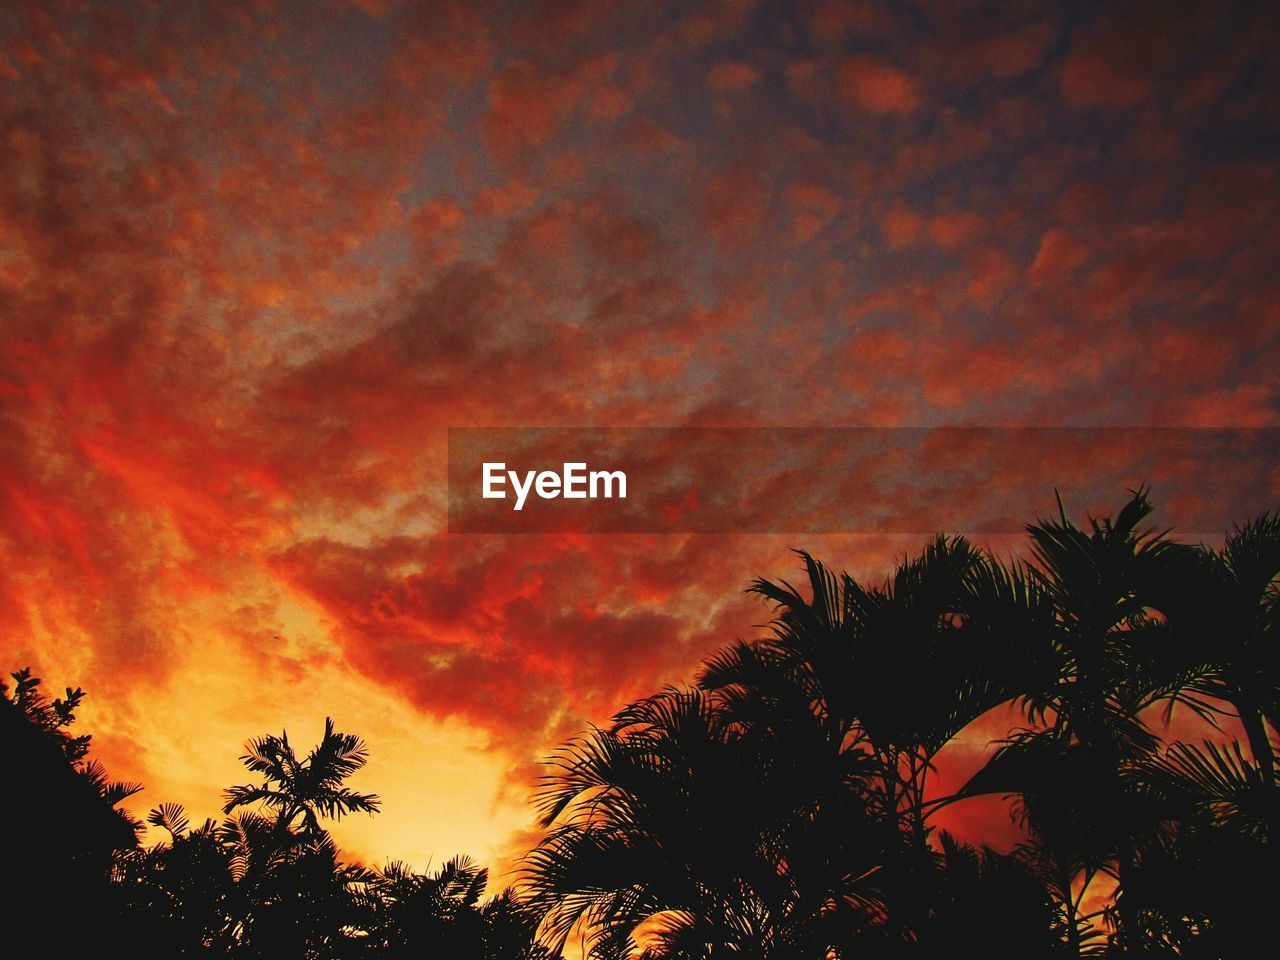 sky, sunset, tree, cloud - sky, beauty in nature, plant, orange color, scenics - nature, low angle view, silhouette, tranquility, tranquil scene, palm tree, growth, tropical climate, no people, nature, idyllic, outdoors, dramatic sky, treetop, romantic sky